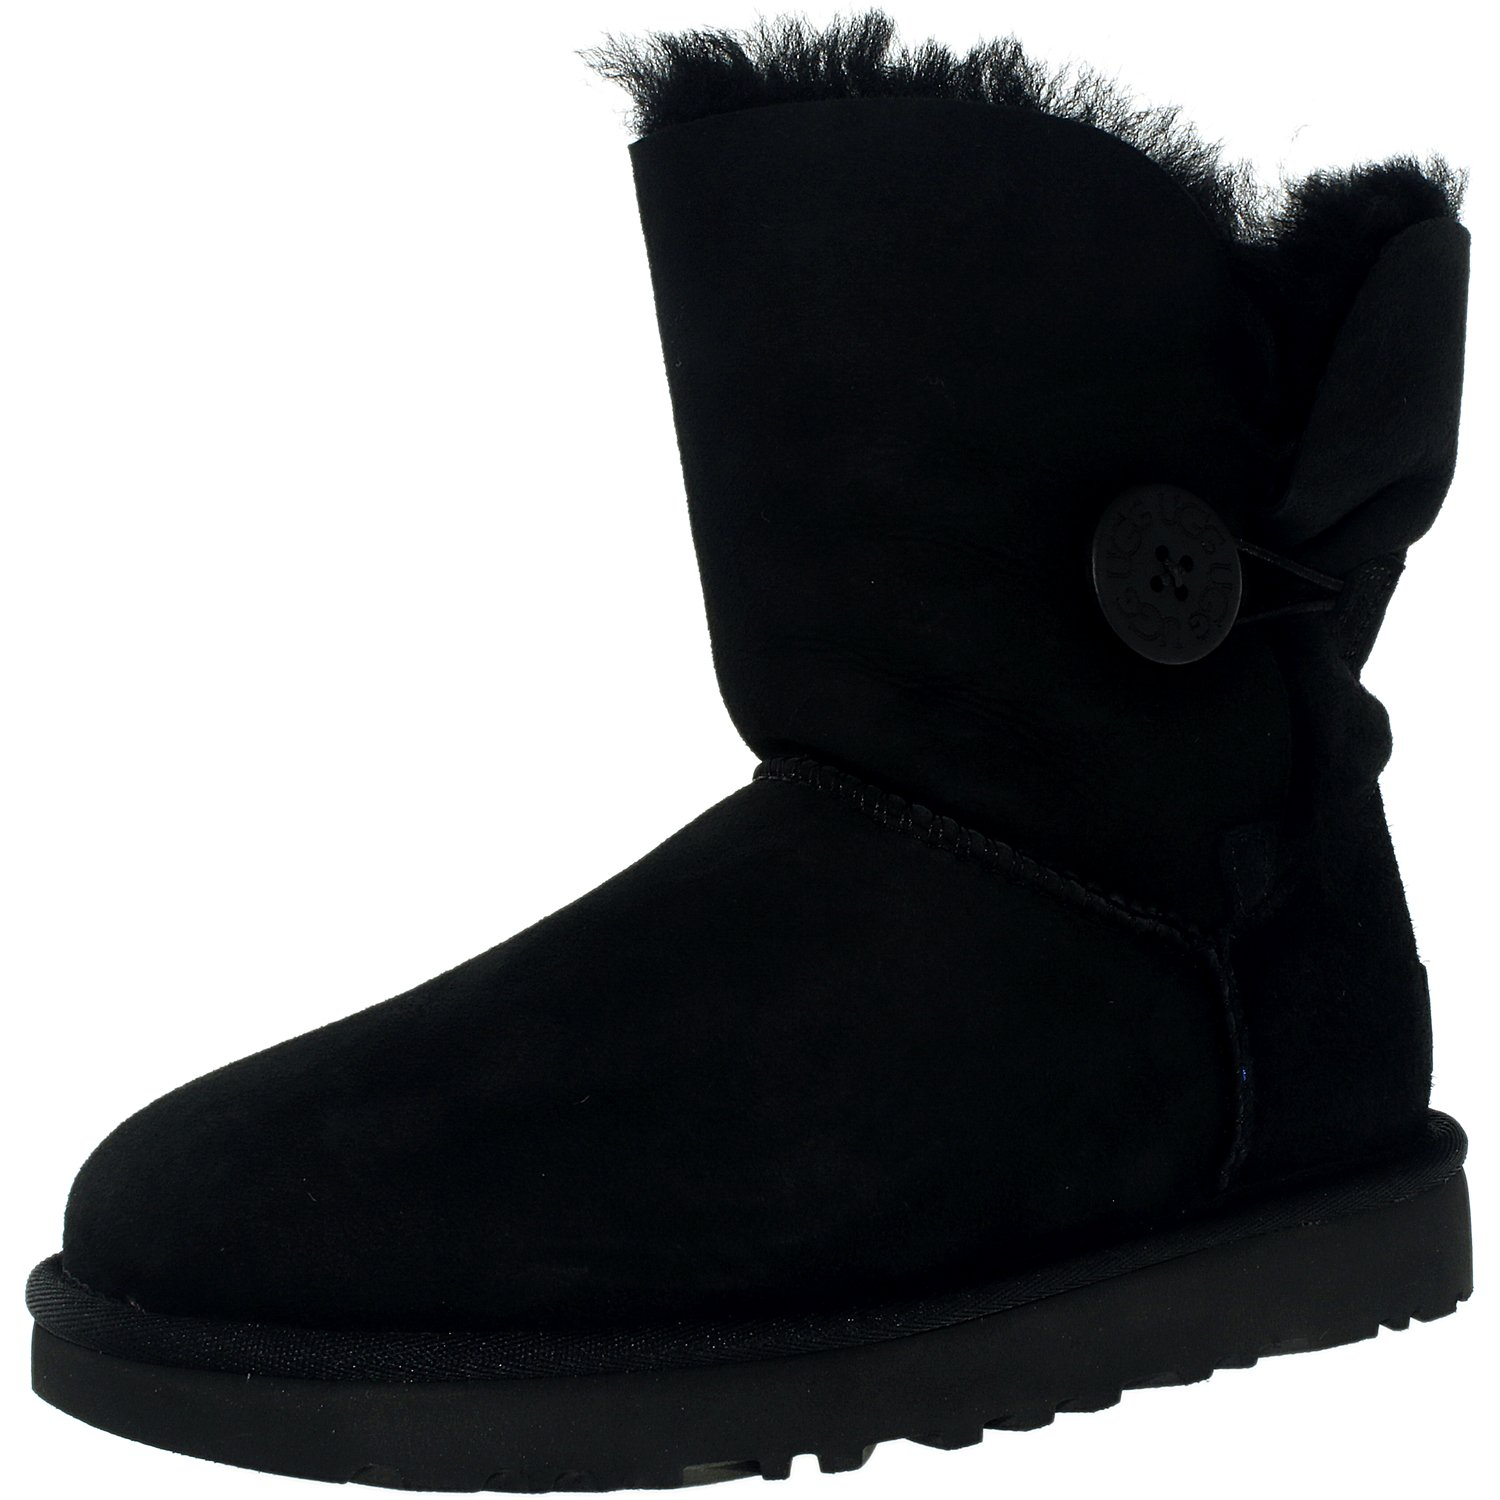 Ugg Women's Bailey Button II Black High-Top Sheepskin Boo...